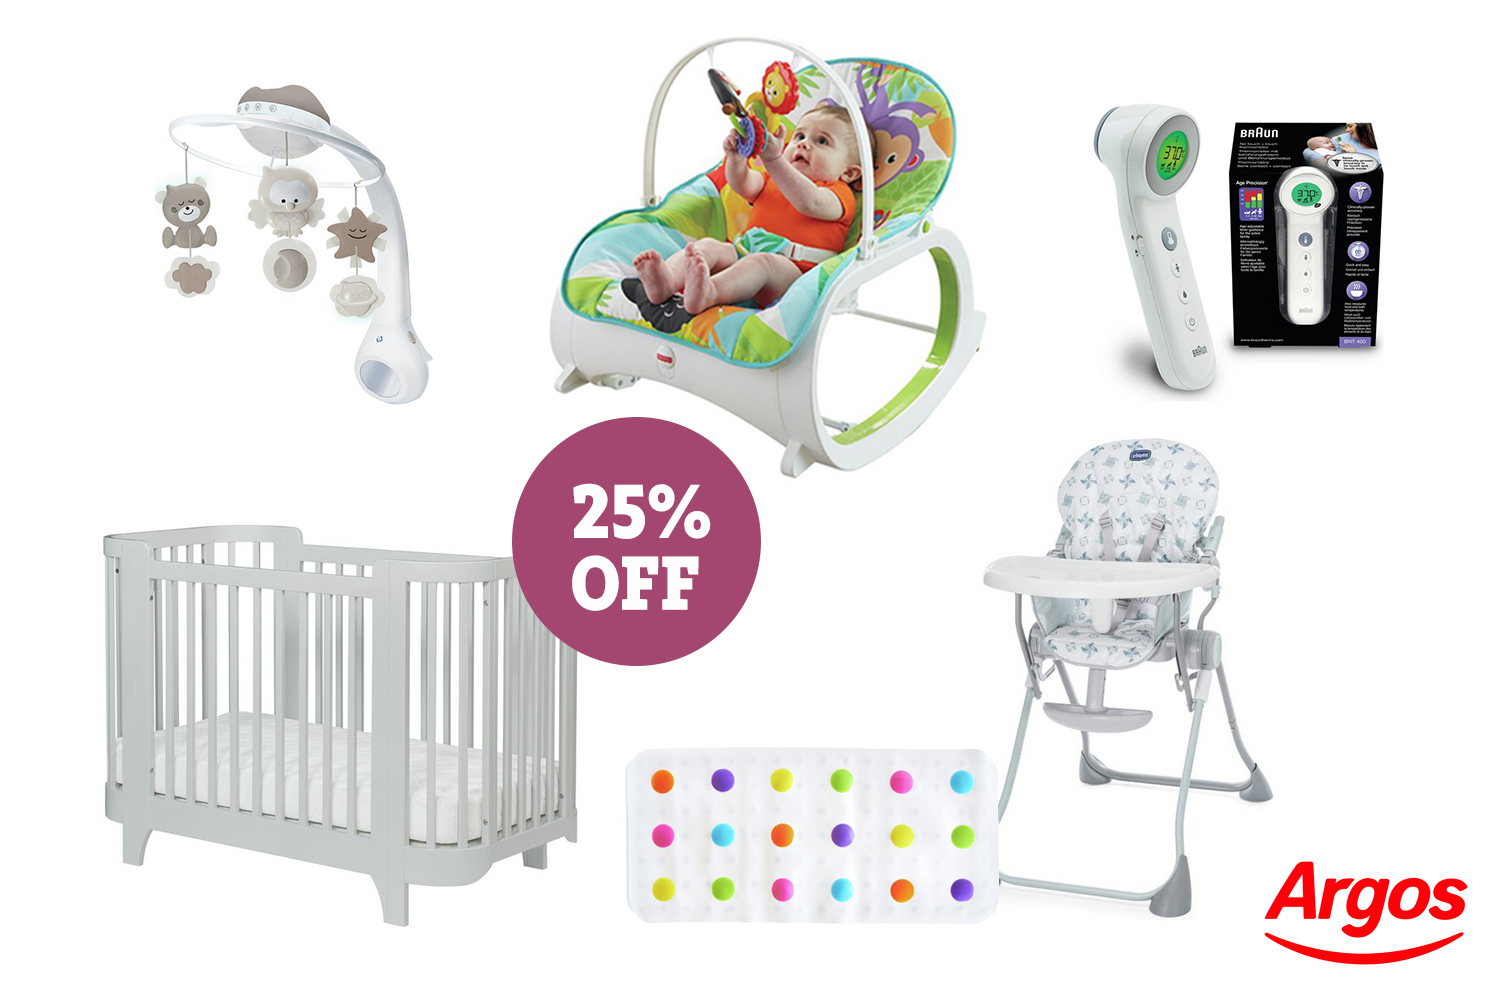 Baby Chairs Argos Argos Launches Baby And Nursery Sale With Up To A Third Off